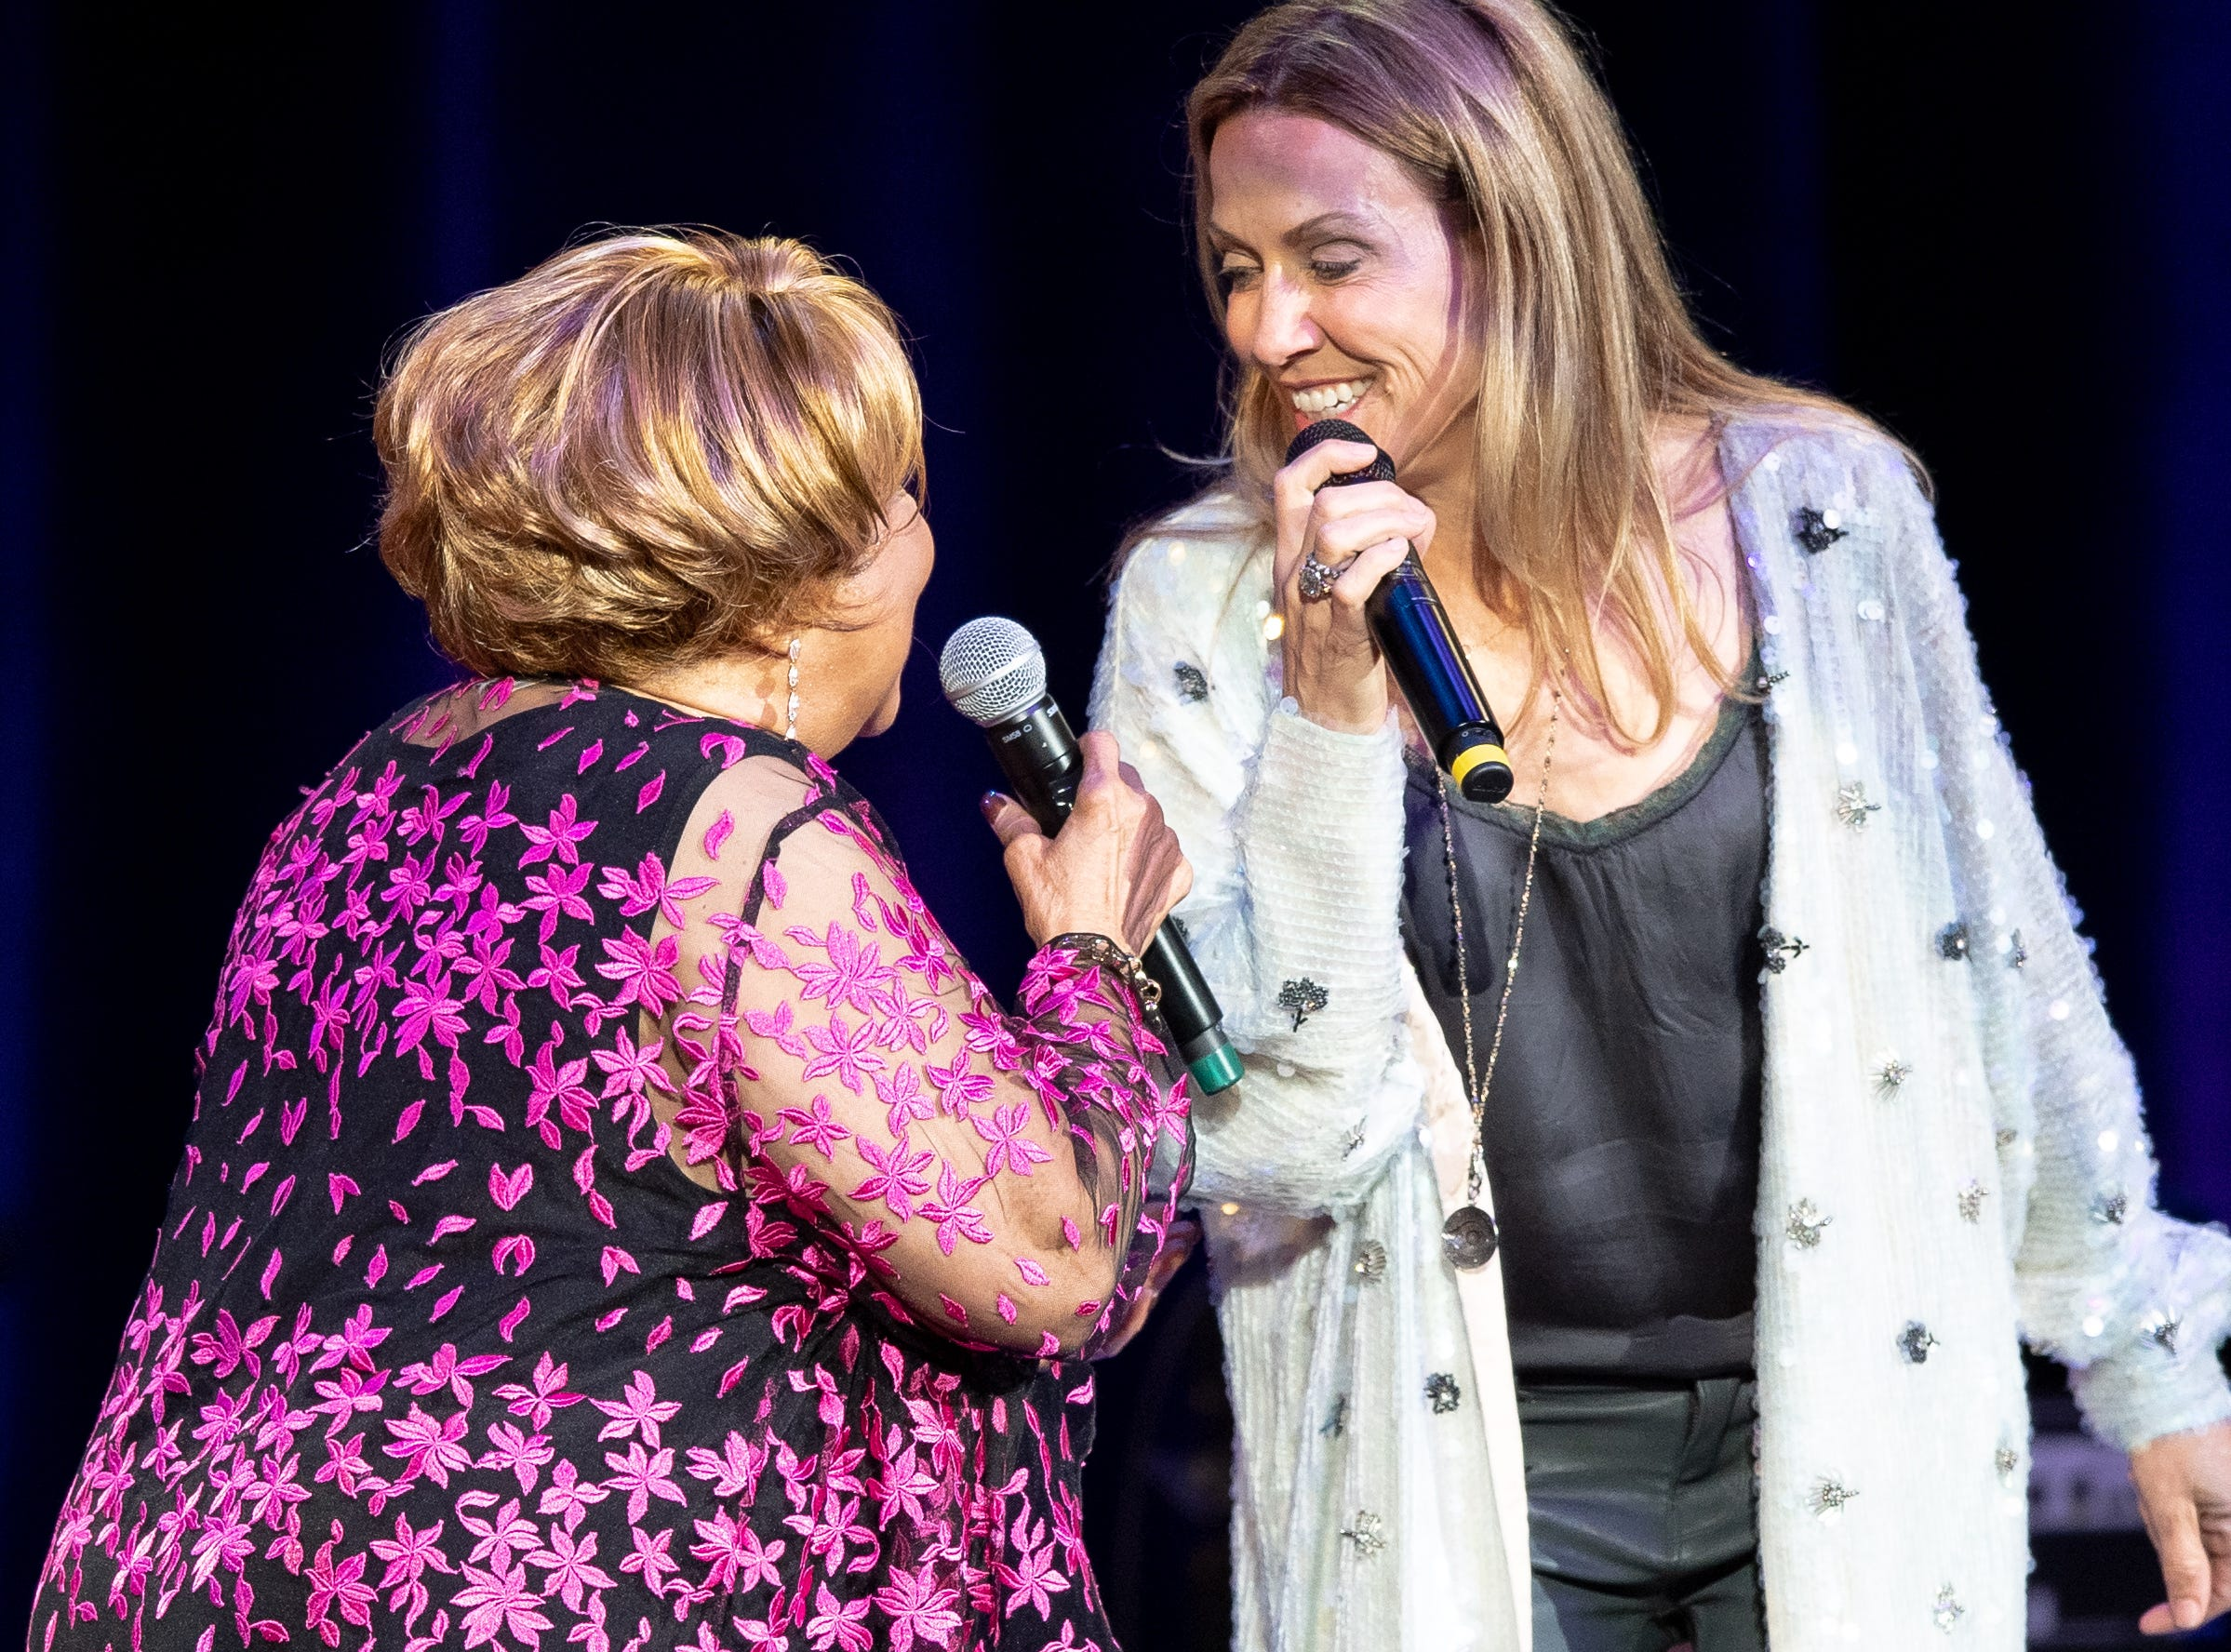 Mavis Staples performs with Sheryl Crow during the Mavis and Friends concert at the Ryman Auditorium in Nashville, Tenn., Wednesday, May 15, 2019.